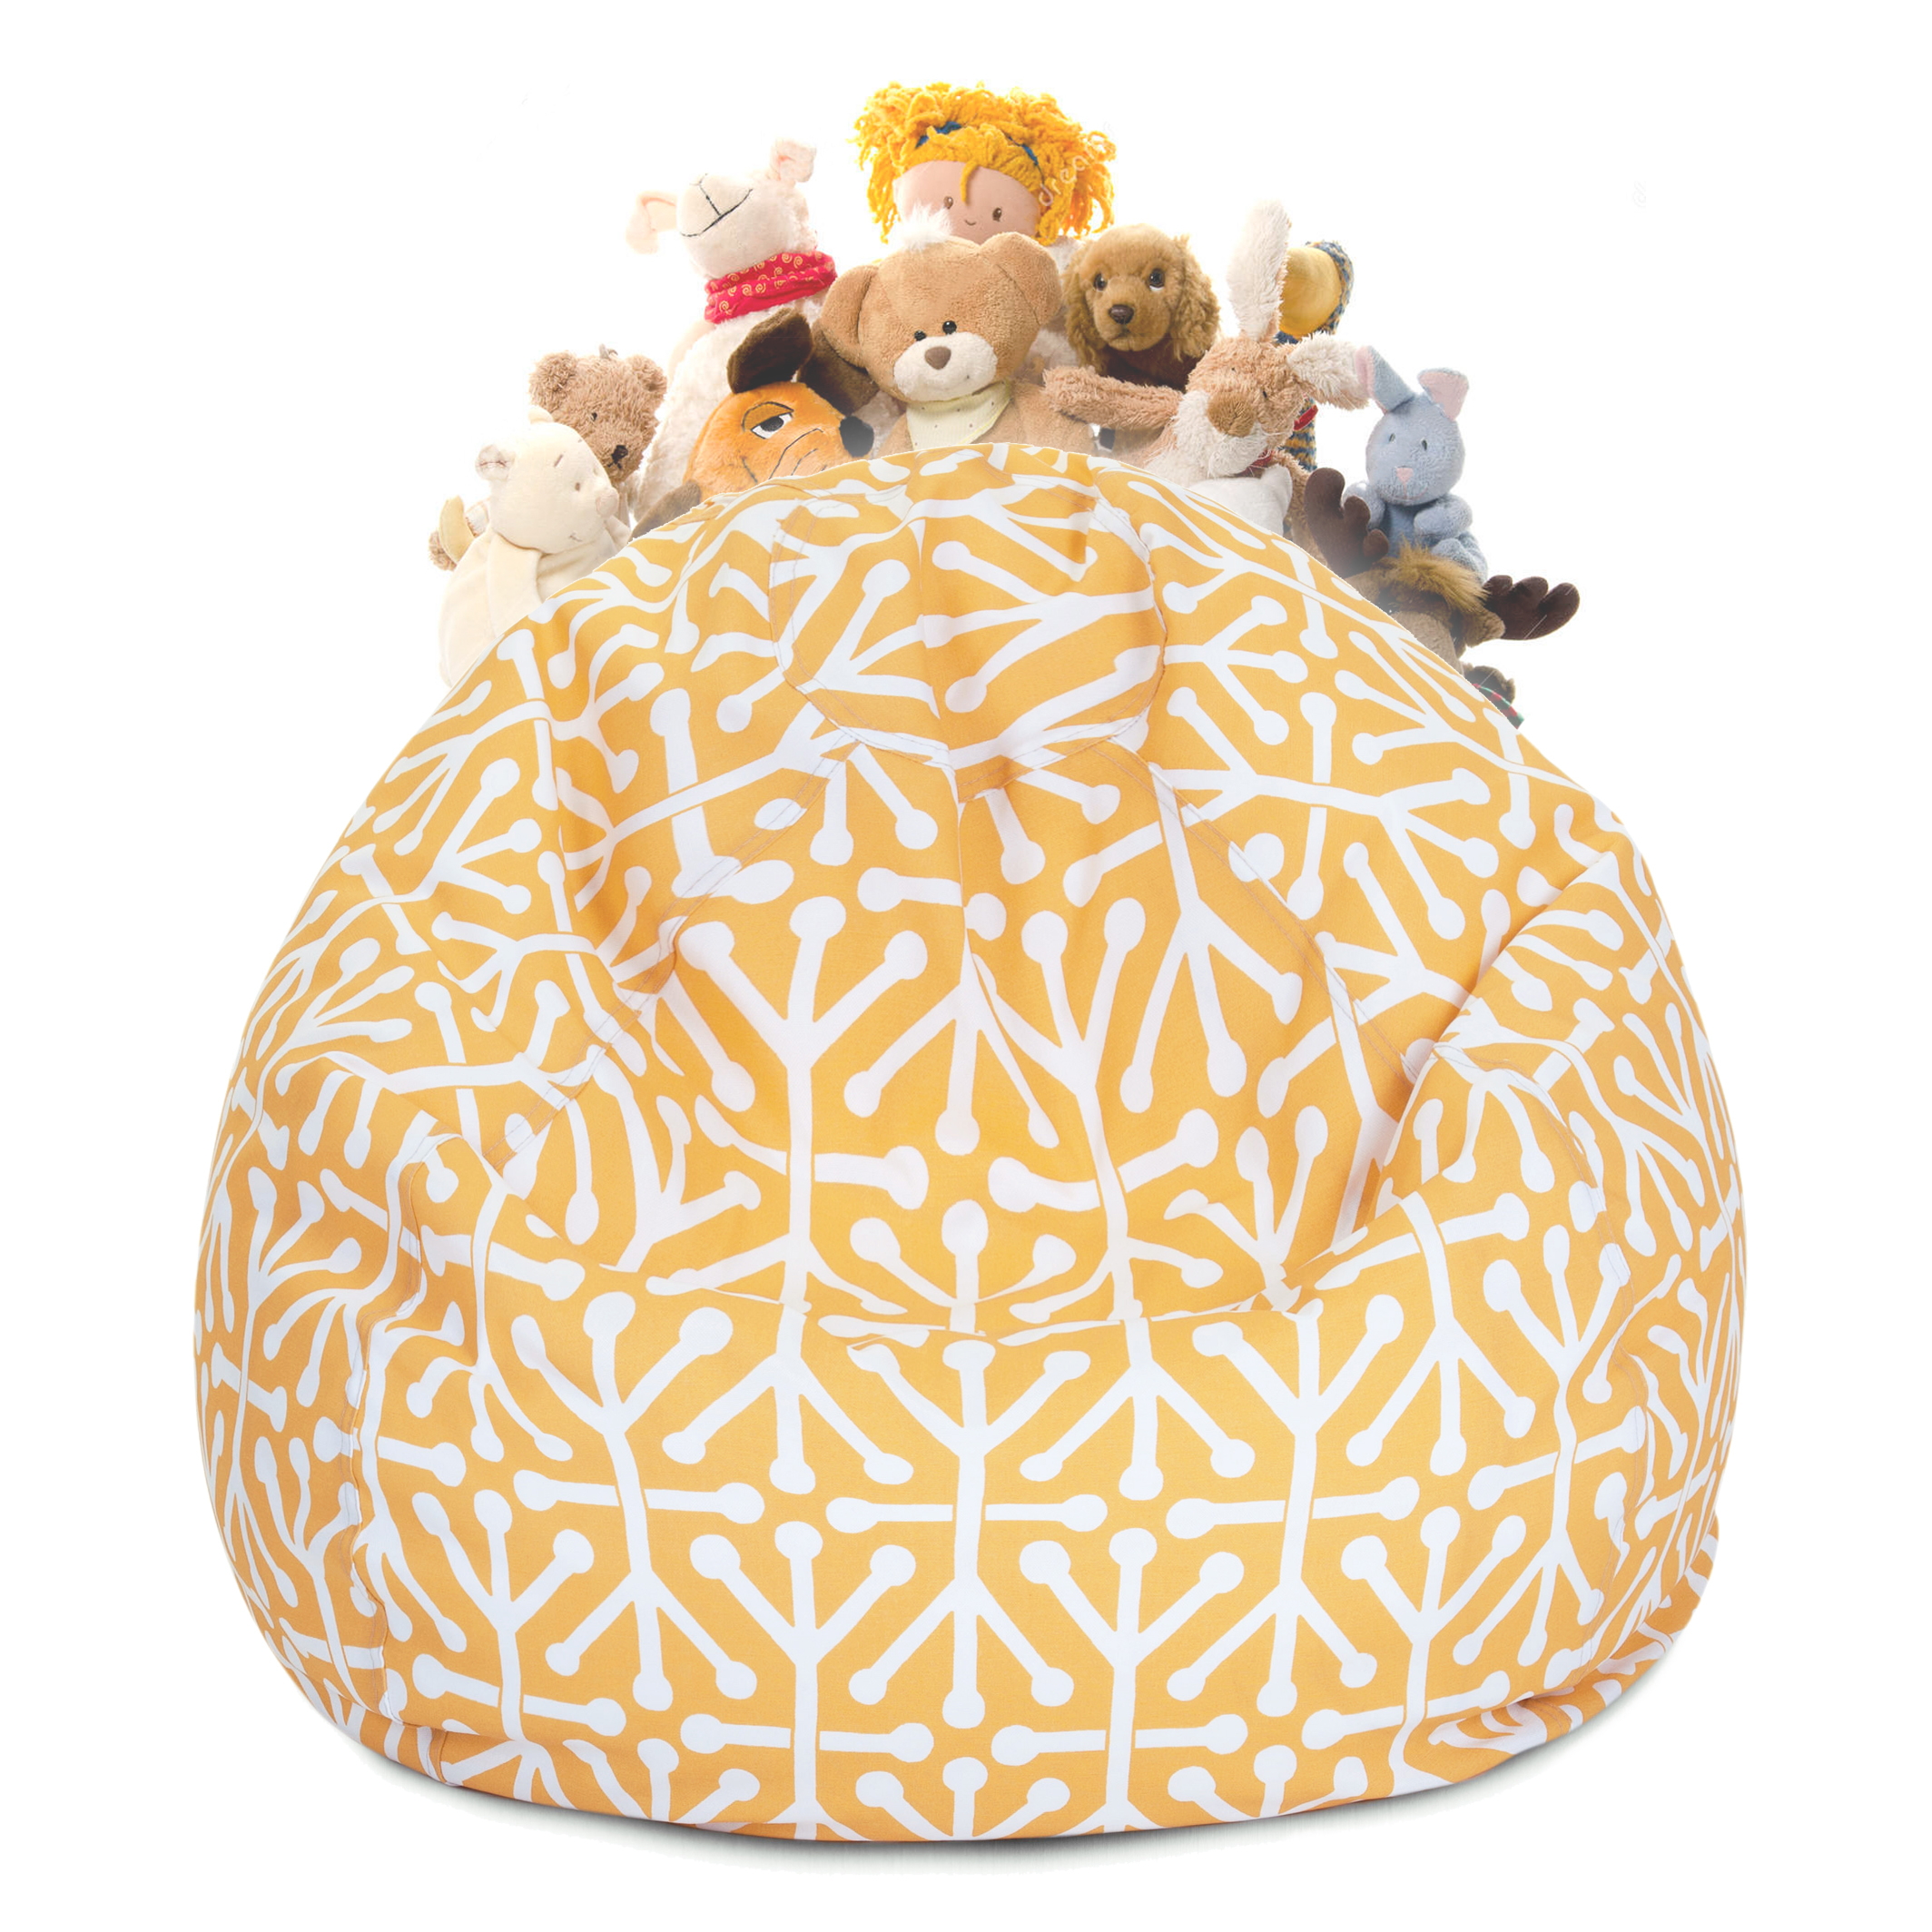 Majestic Home Goods Aruba Stuffed Animal Storage Bean Bag Chair Cover with Transparent Mesh Base, Multiple Colors